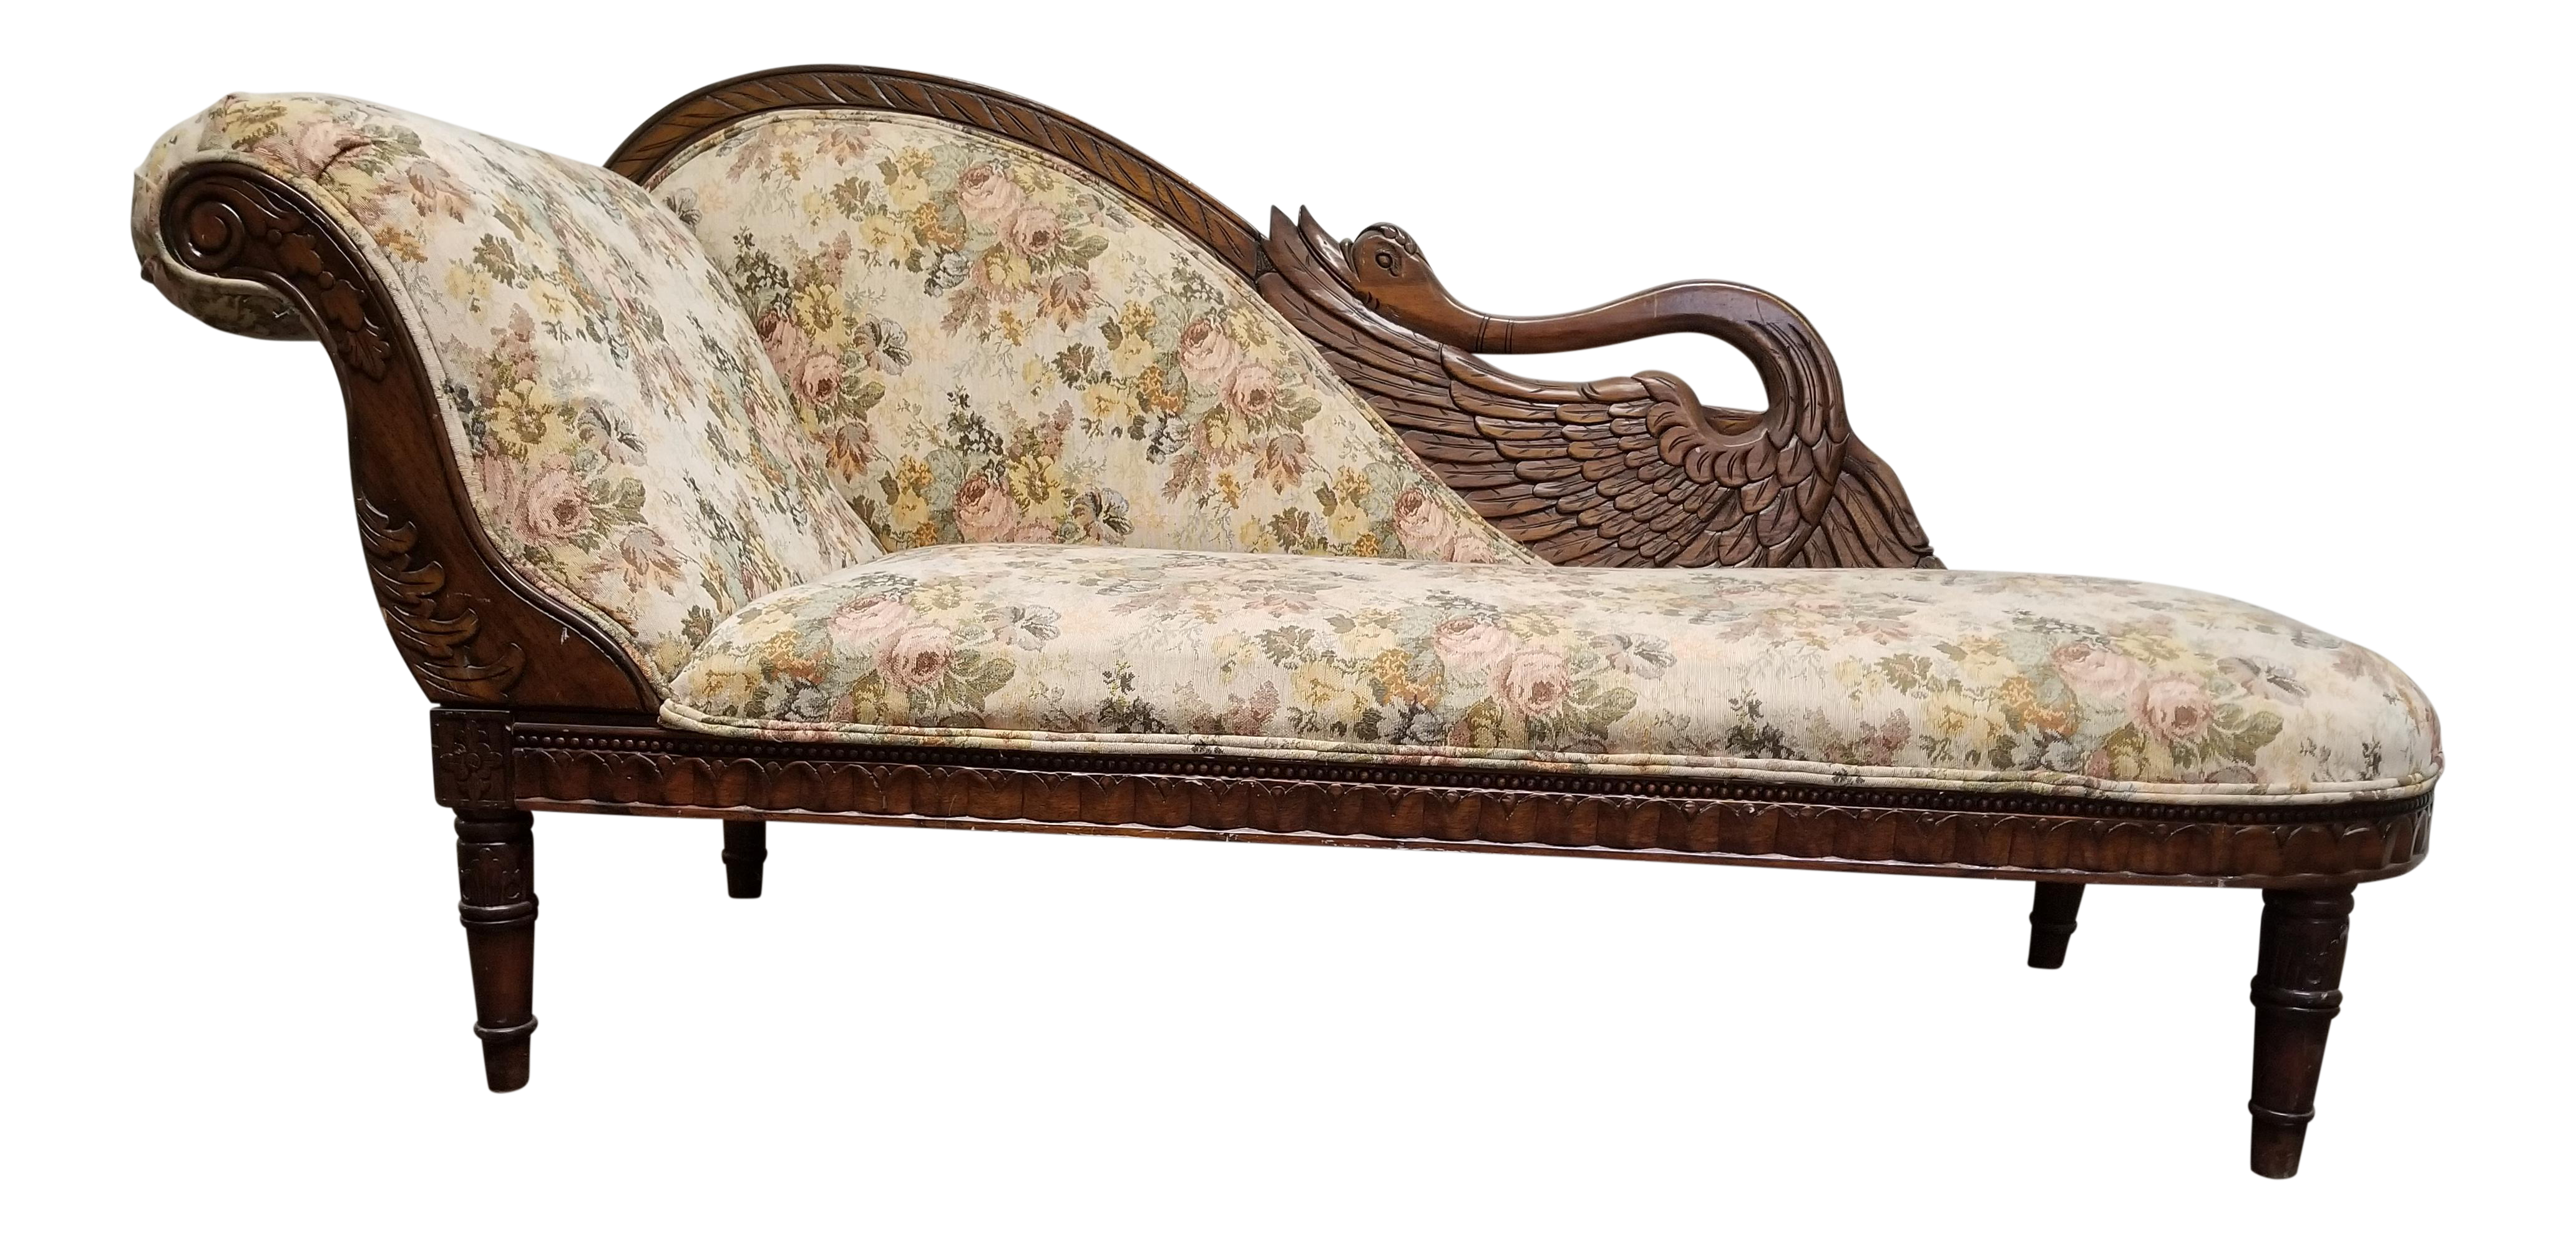 Victorian couch png. Antique floral swan chaise